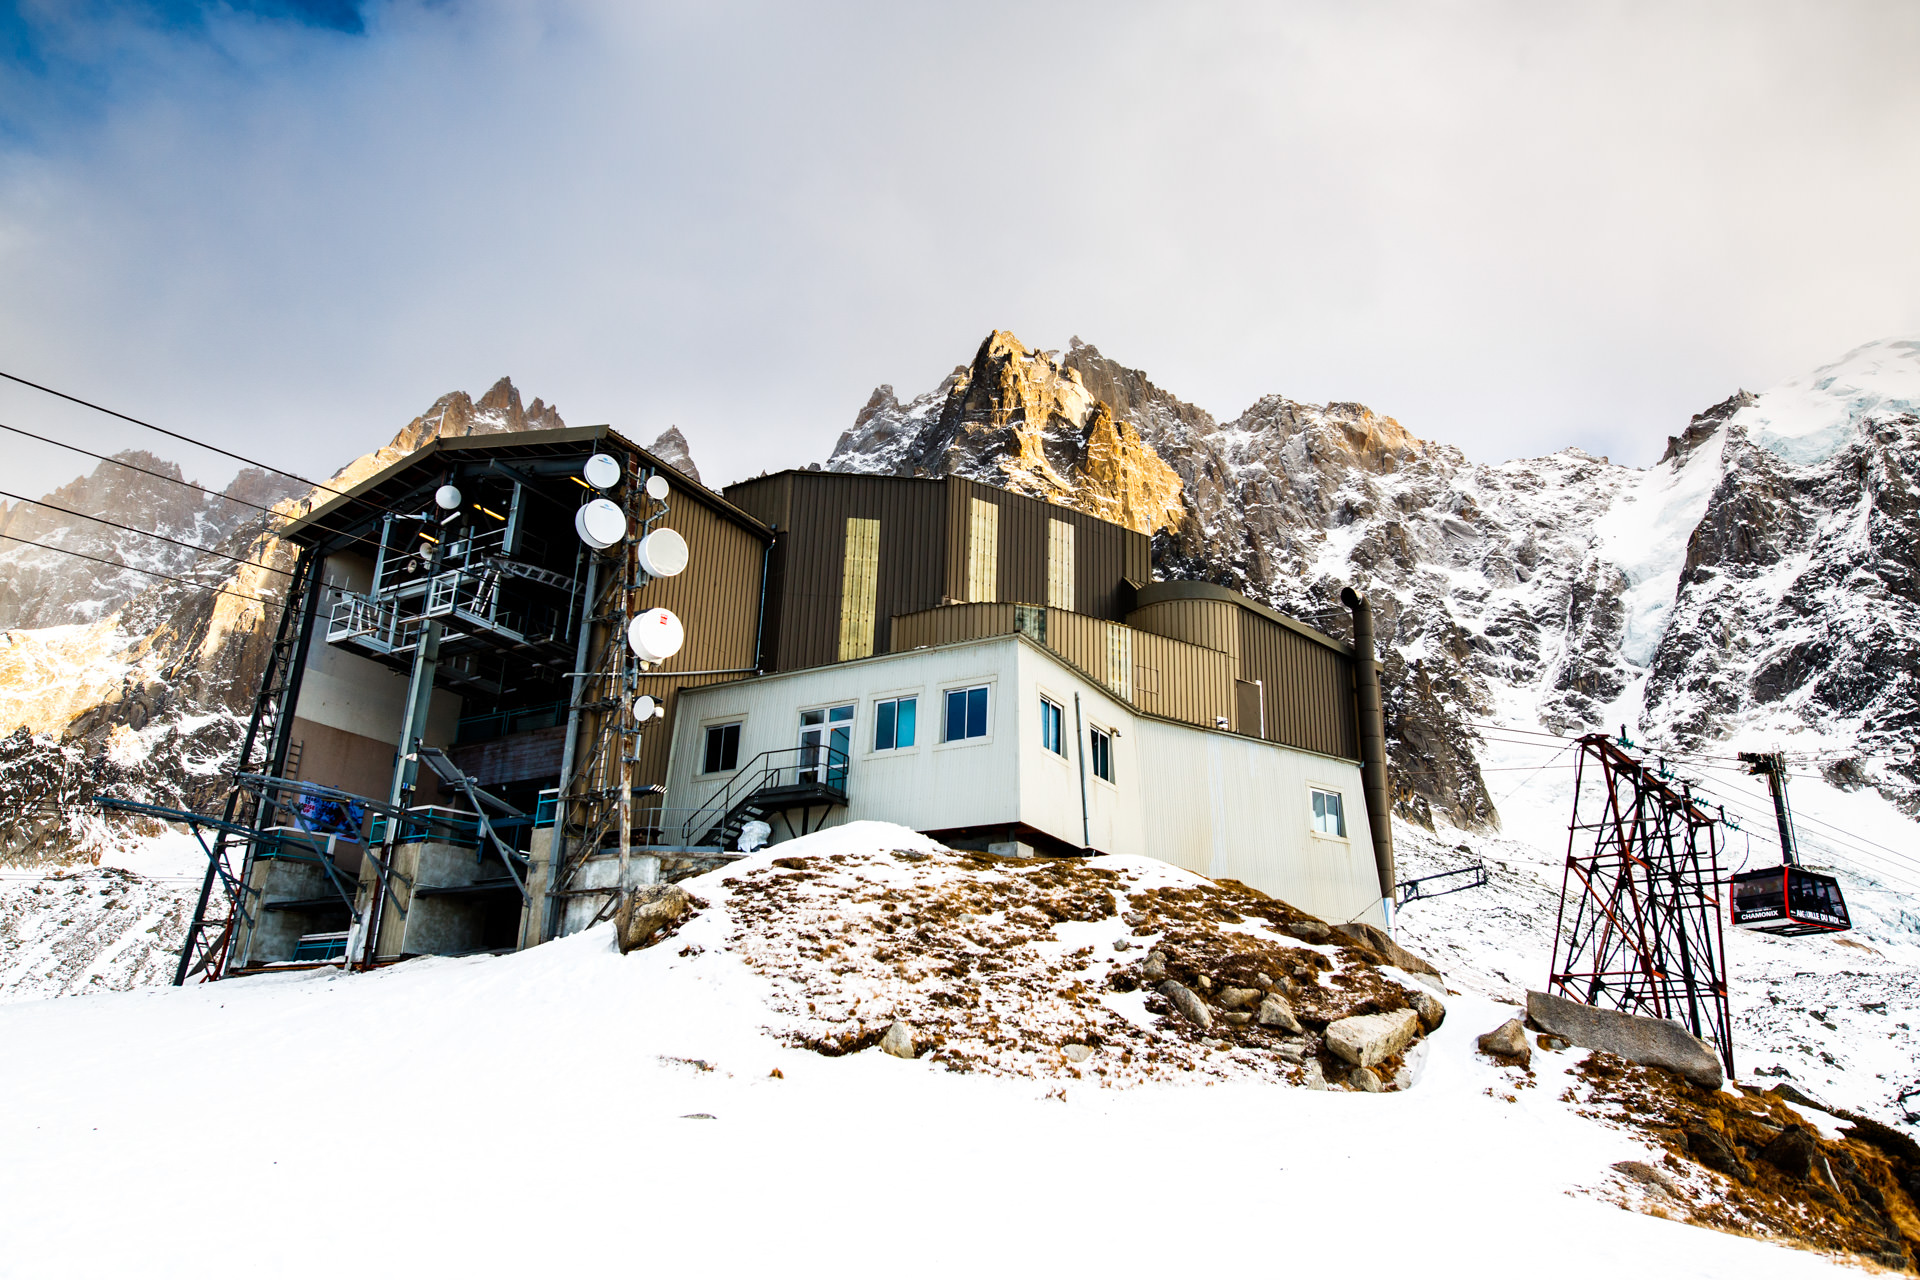 Plan de l'Aiguille - the transfer point of cable cars halfway to the peak. You are free to wander around and soak up the scenery.